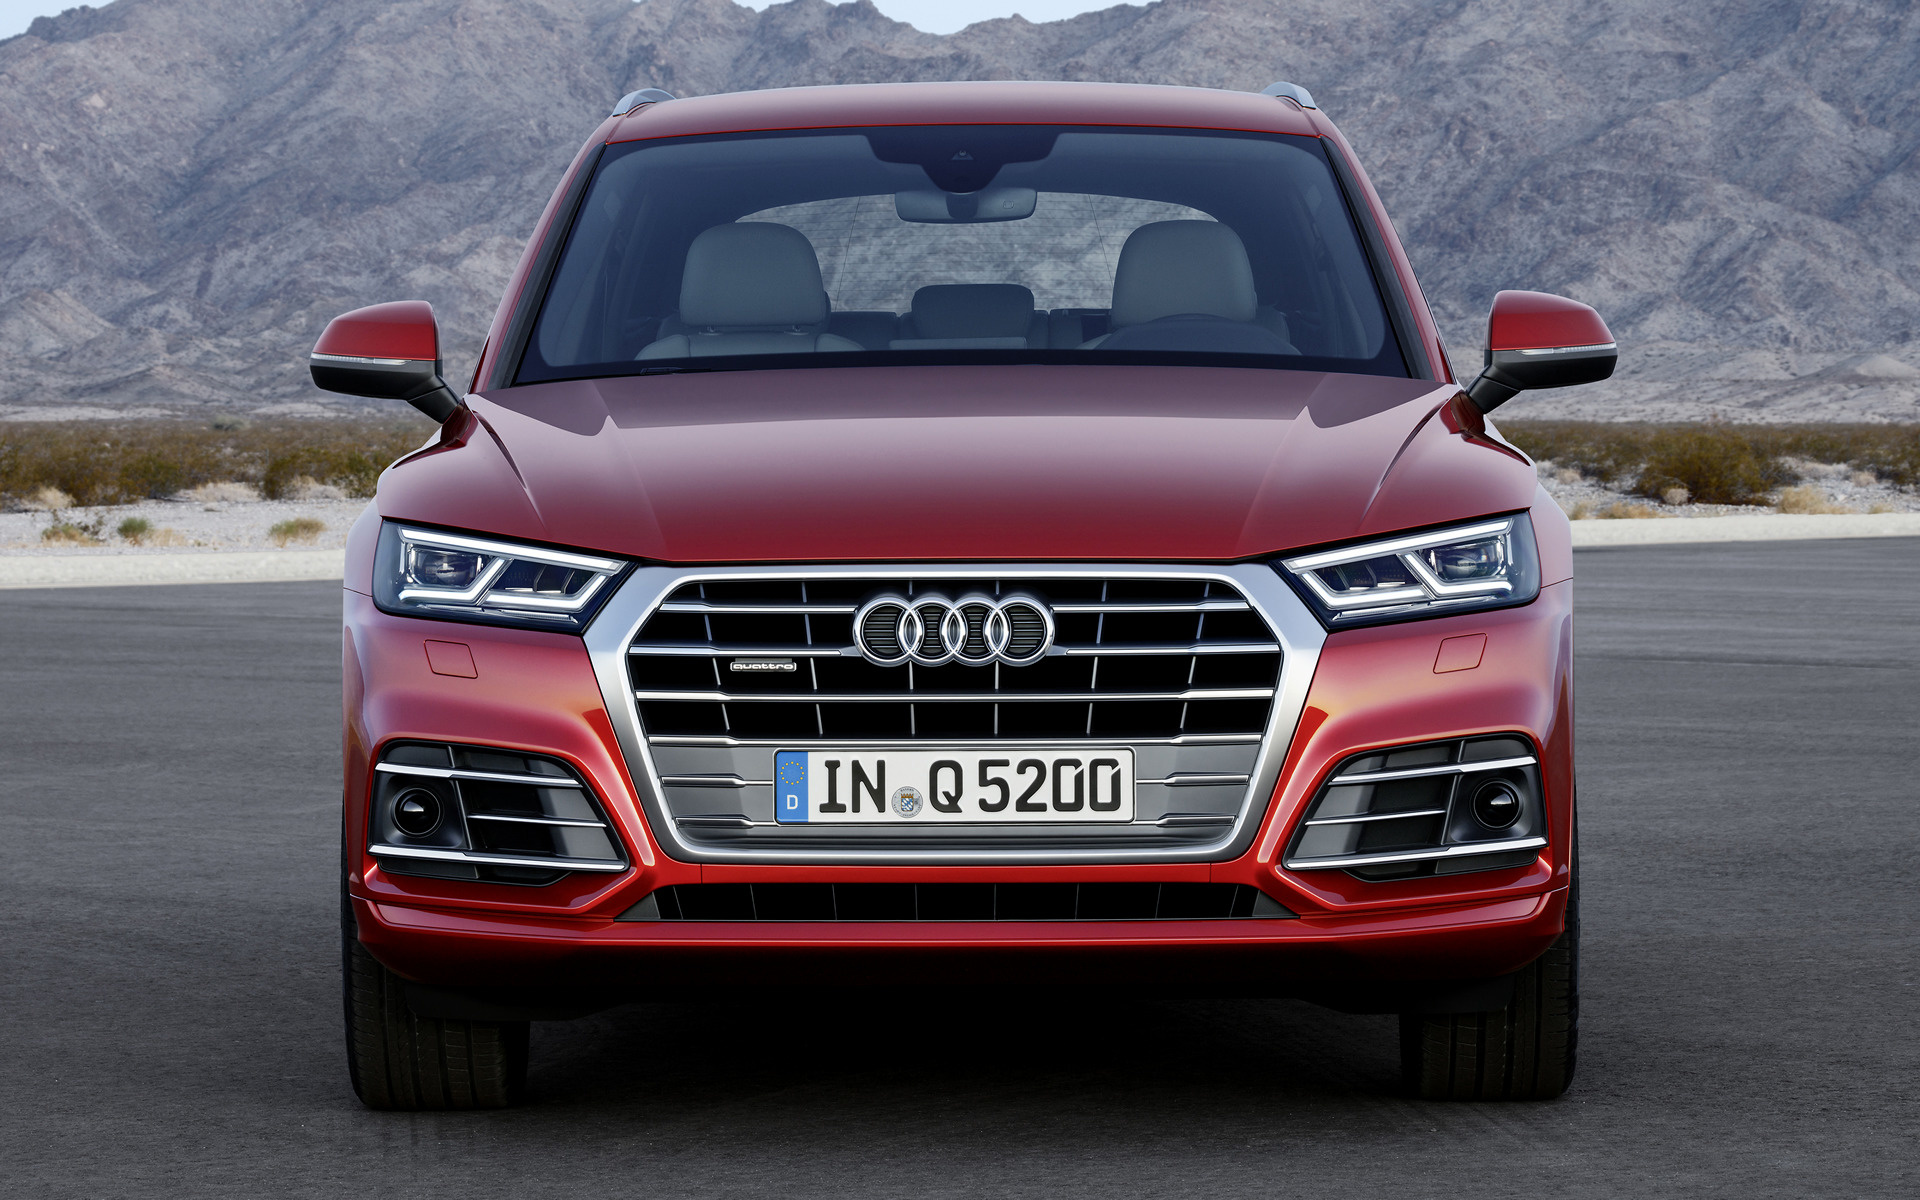 Audi Q5 S line (2017) Wallpapers and HD Images - Car Pixel